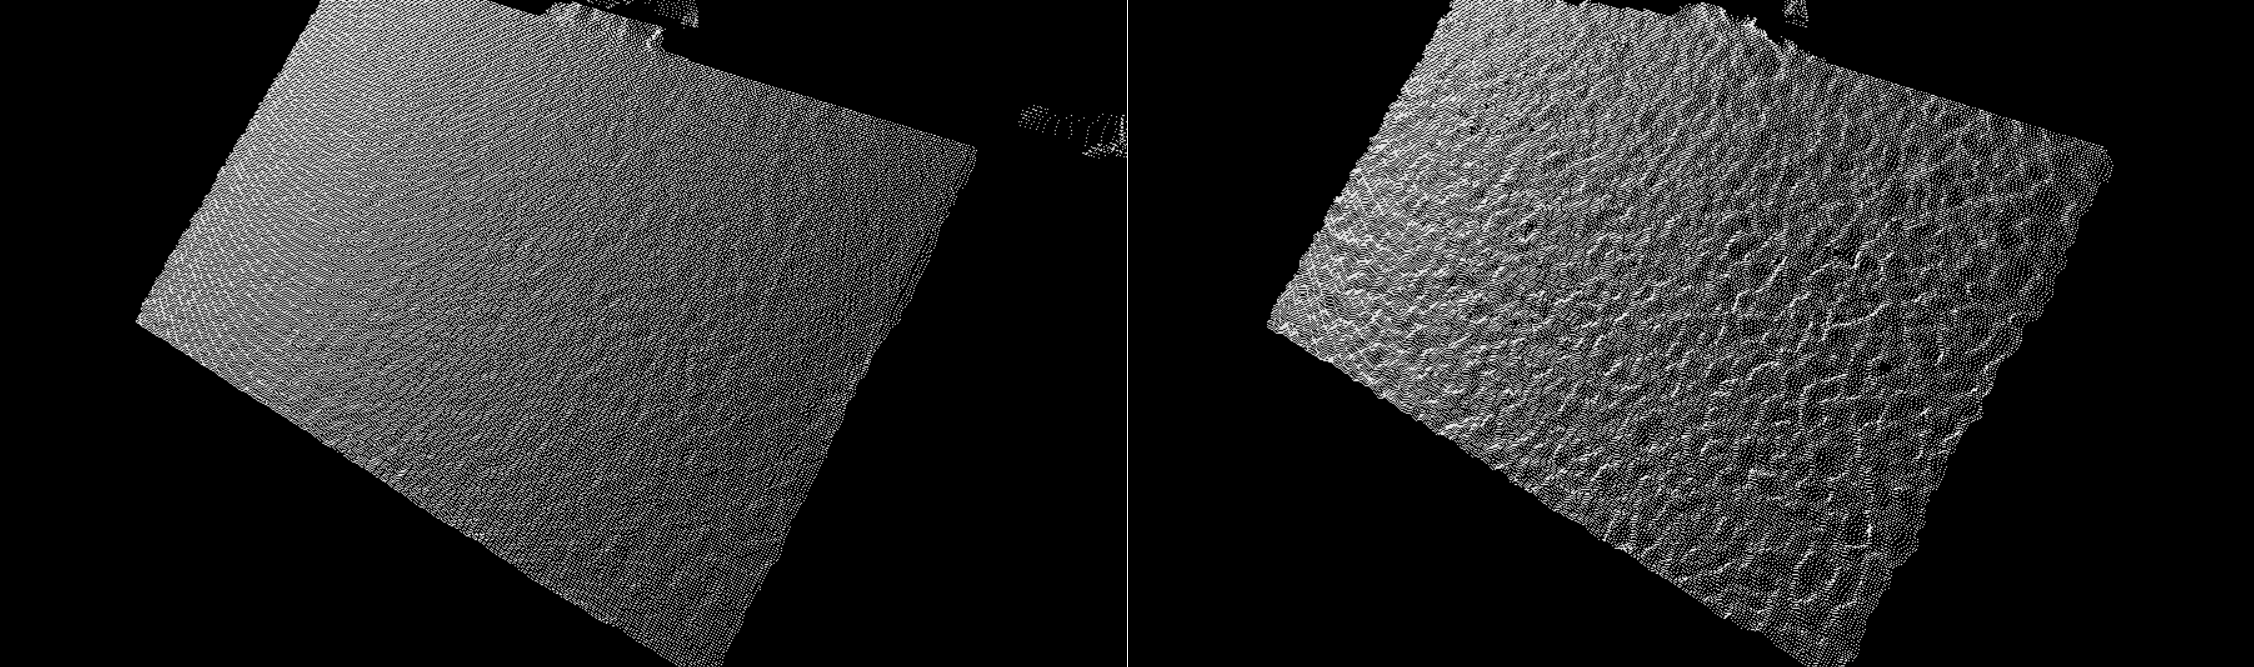 Figure 1. Comparisons of the Point Cloud of a well calibrated camera (LEFT) with a degraded camera (RIGHT) for a flat textured wall. The lower bumpiness on the left is preferred.